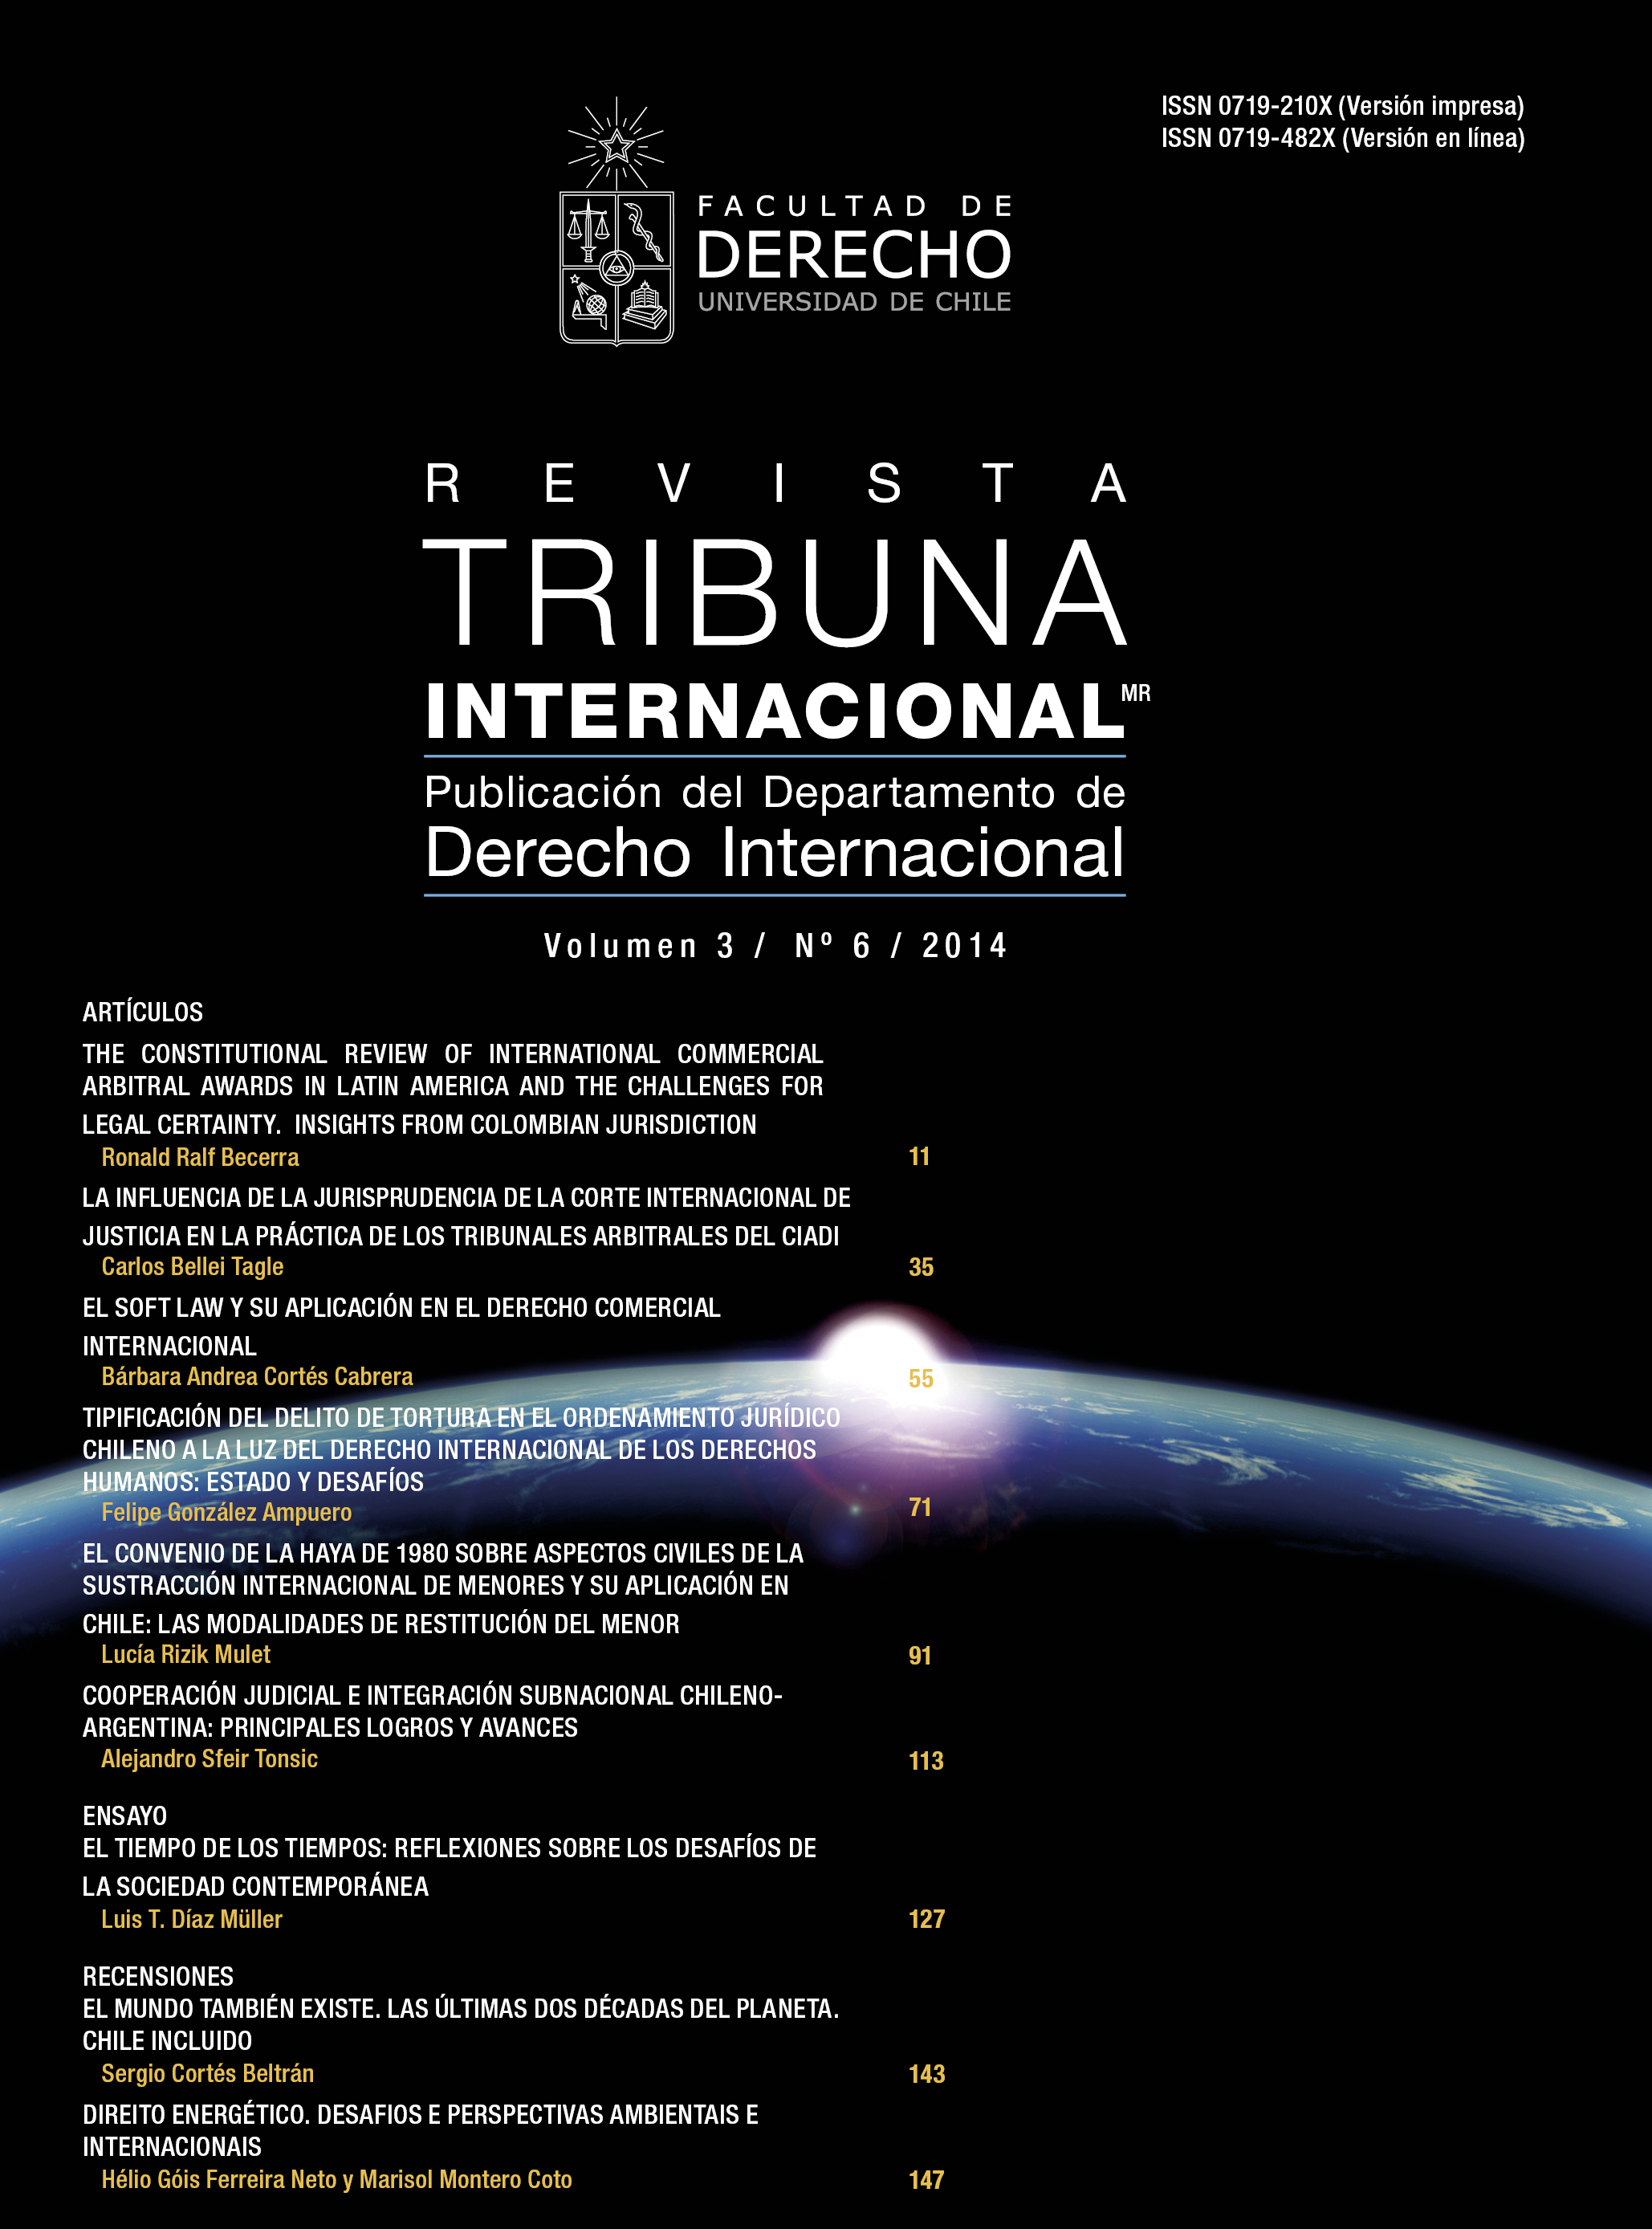 Revista Tribuna Internacional